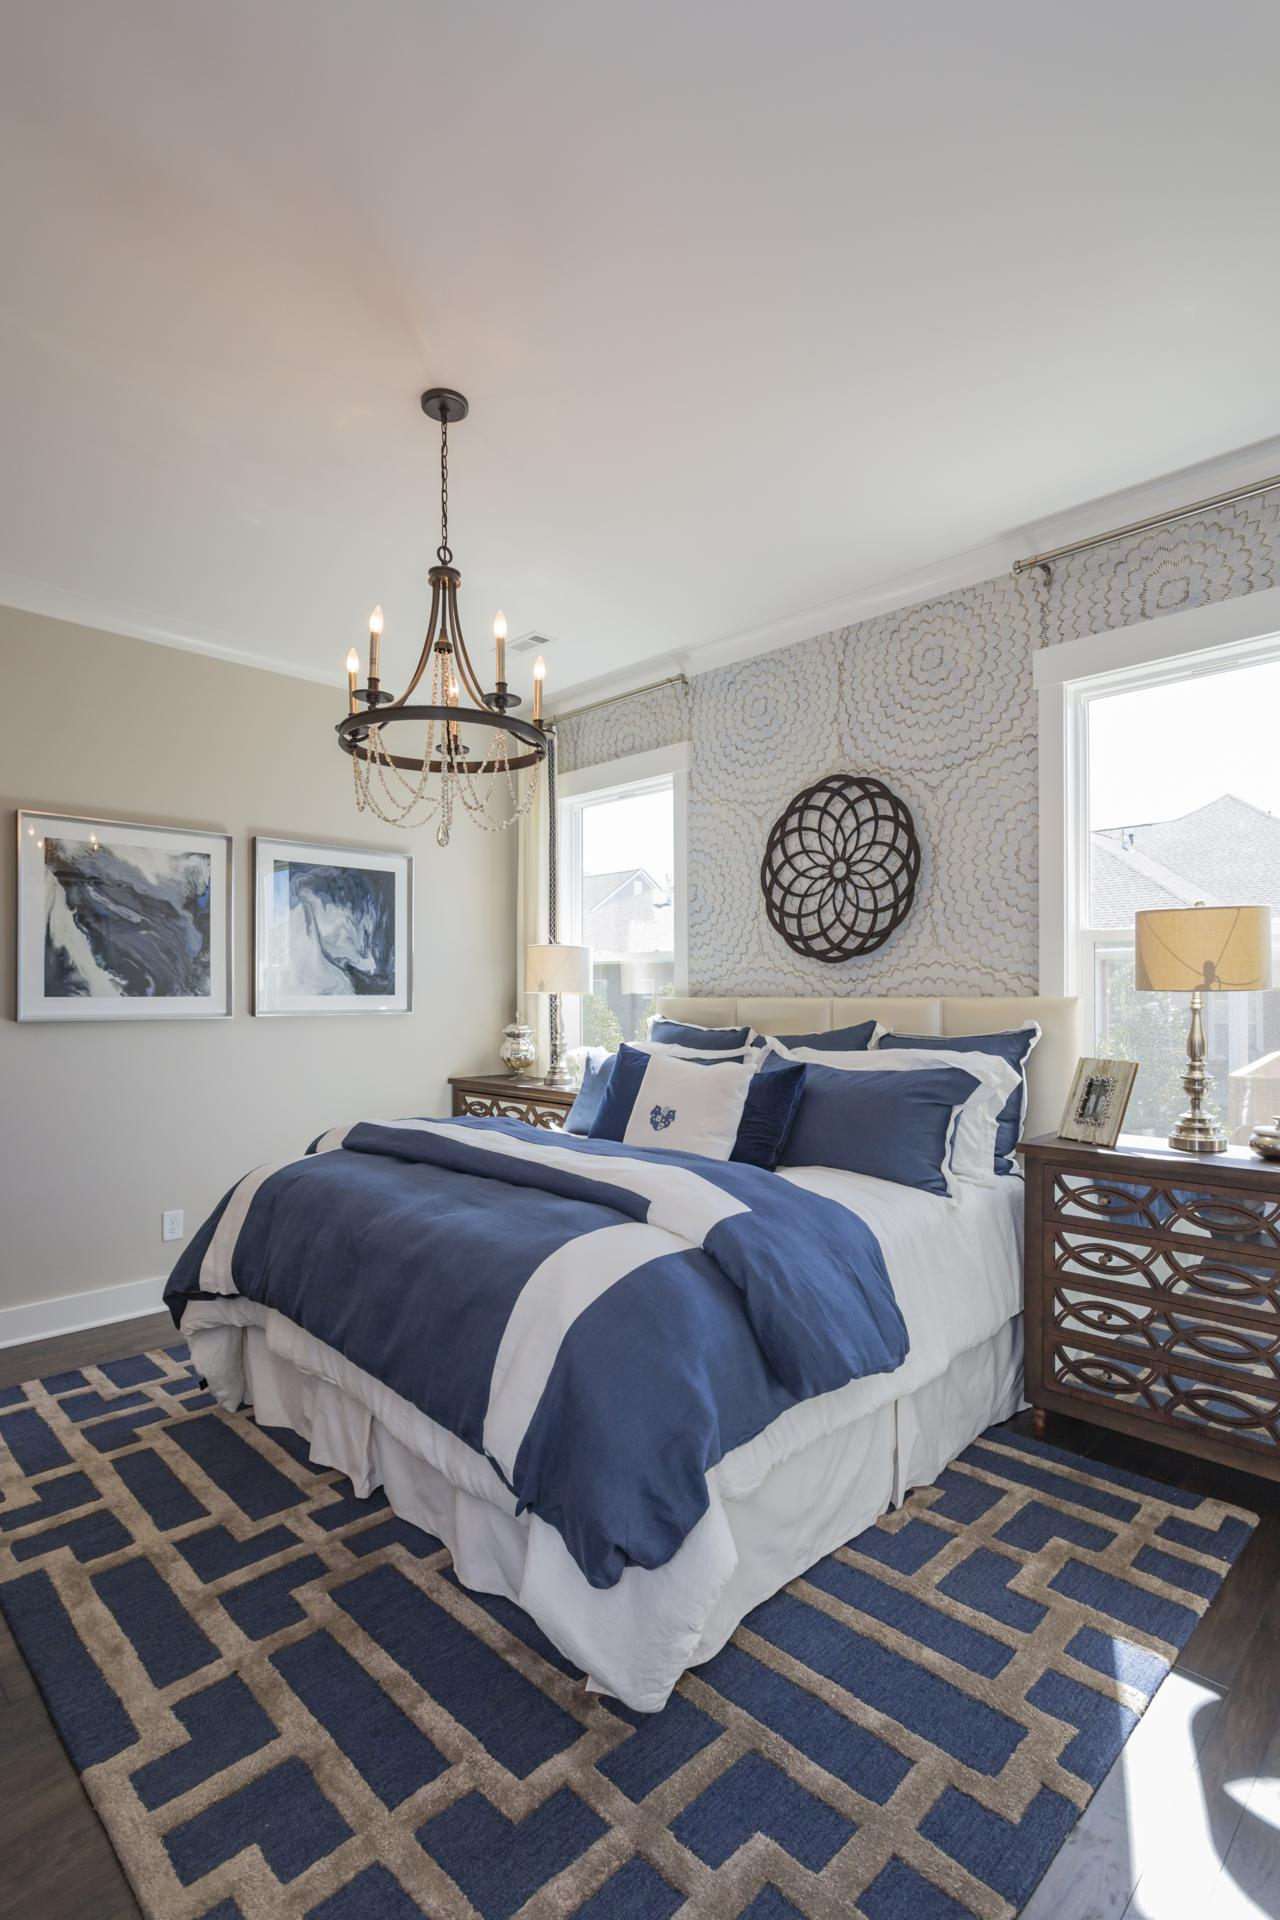 Bedroom featured in the Collette By Drees Homes in Nashville, TN